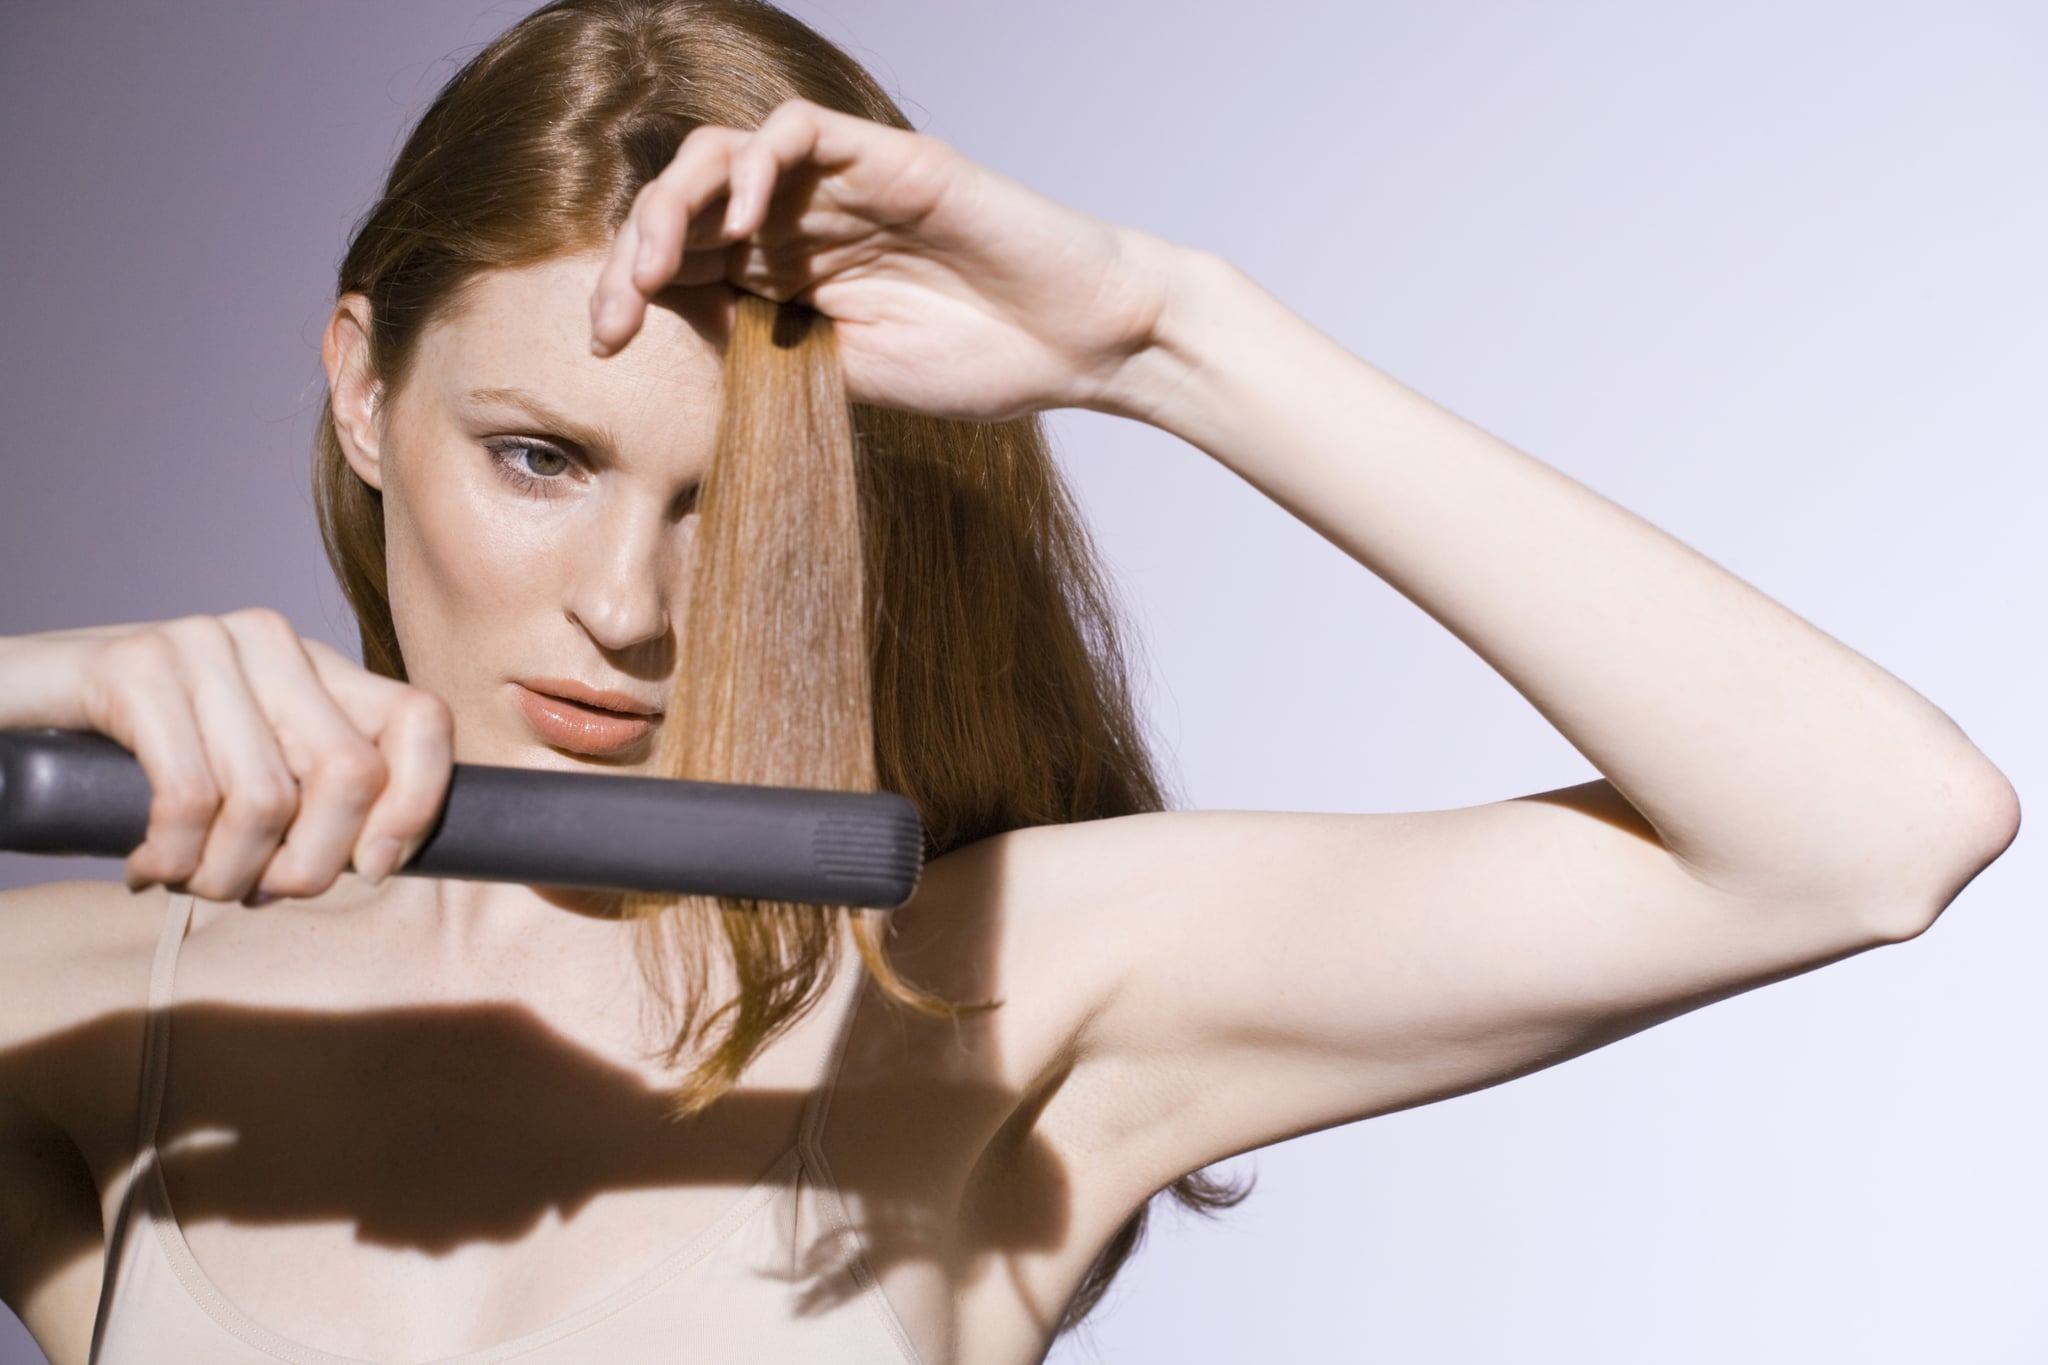 Spring-Clean: Your Flat Iron and Curling Iron